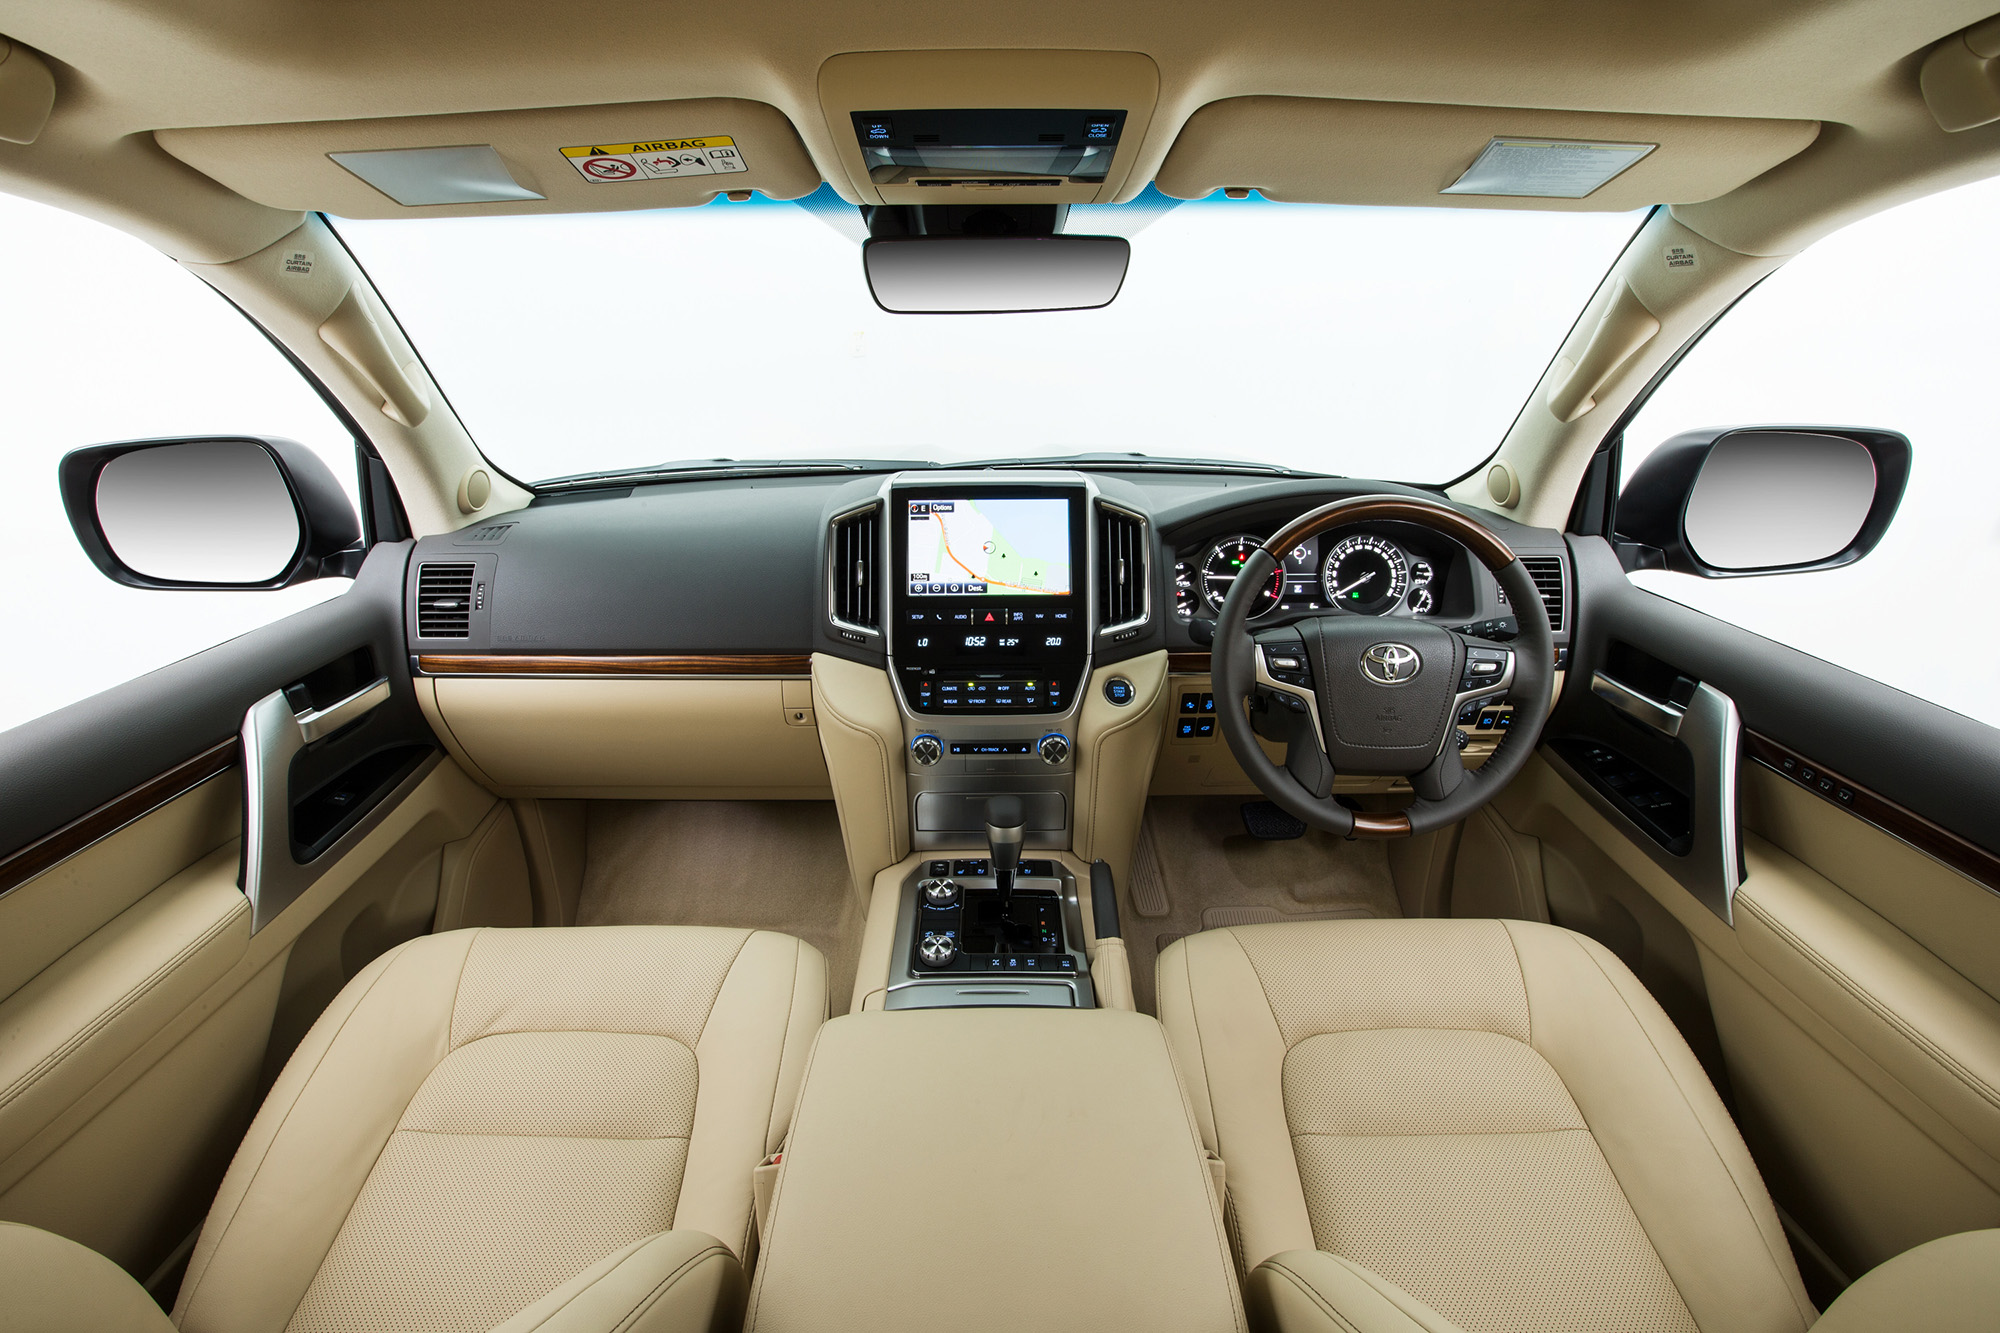 2016 Toyota Landcruiser 200 Series Pricing And